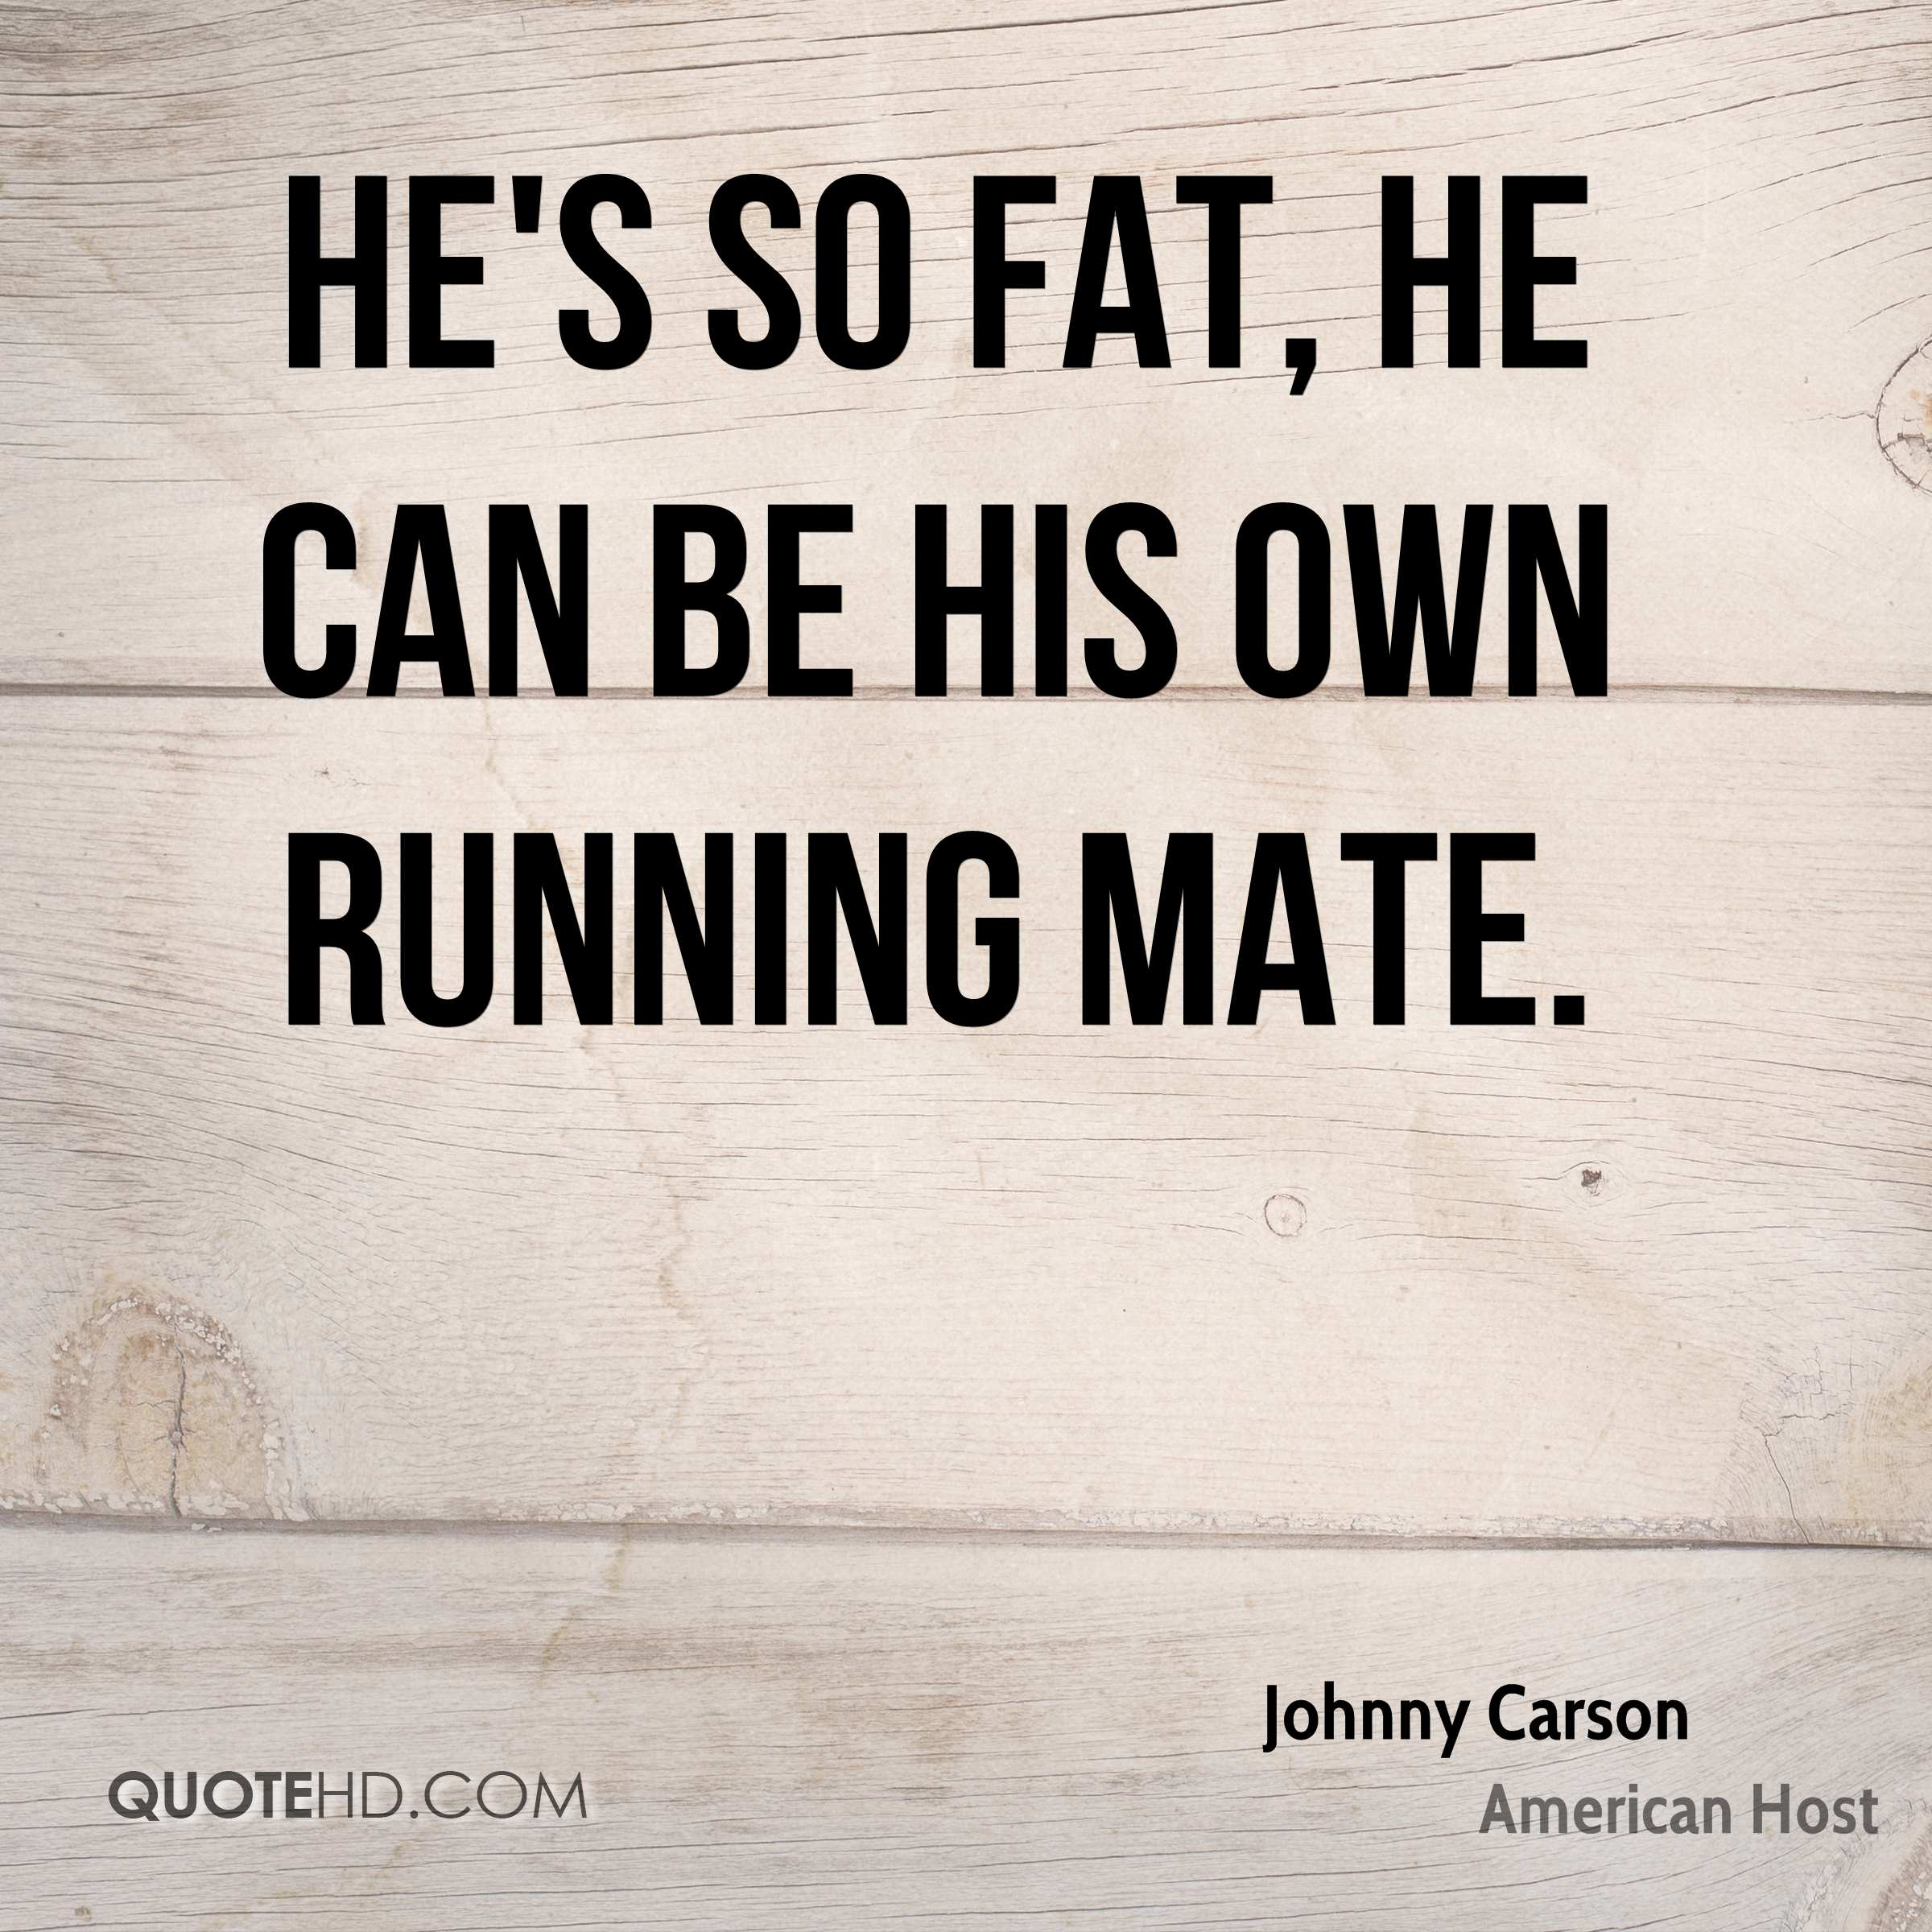 He's so fat, he can be his own running mate.